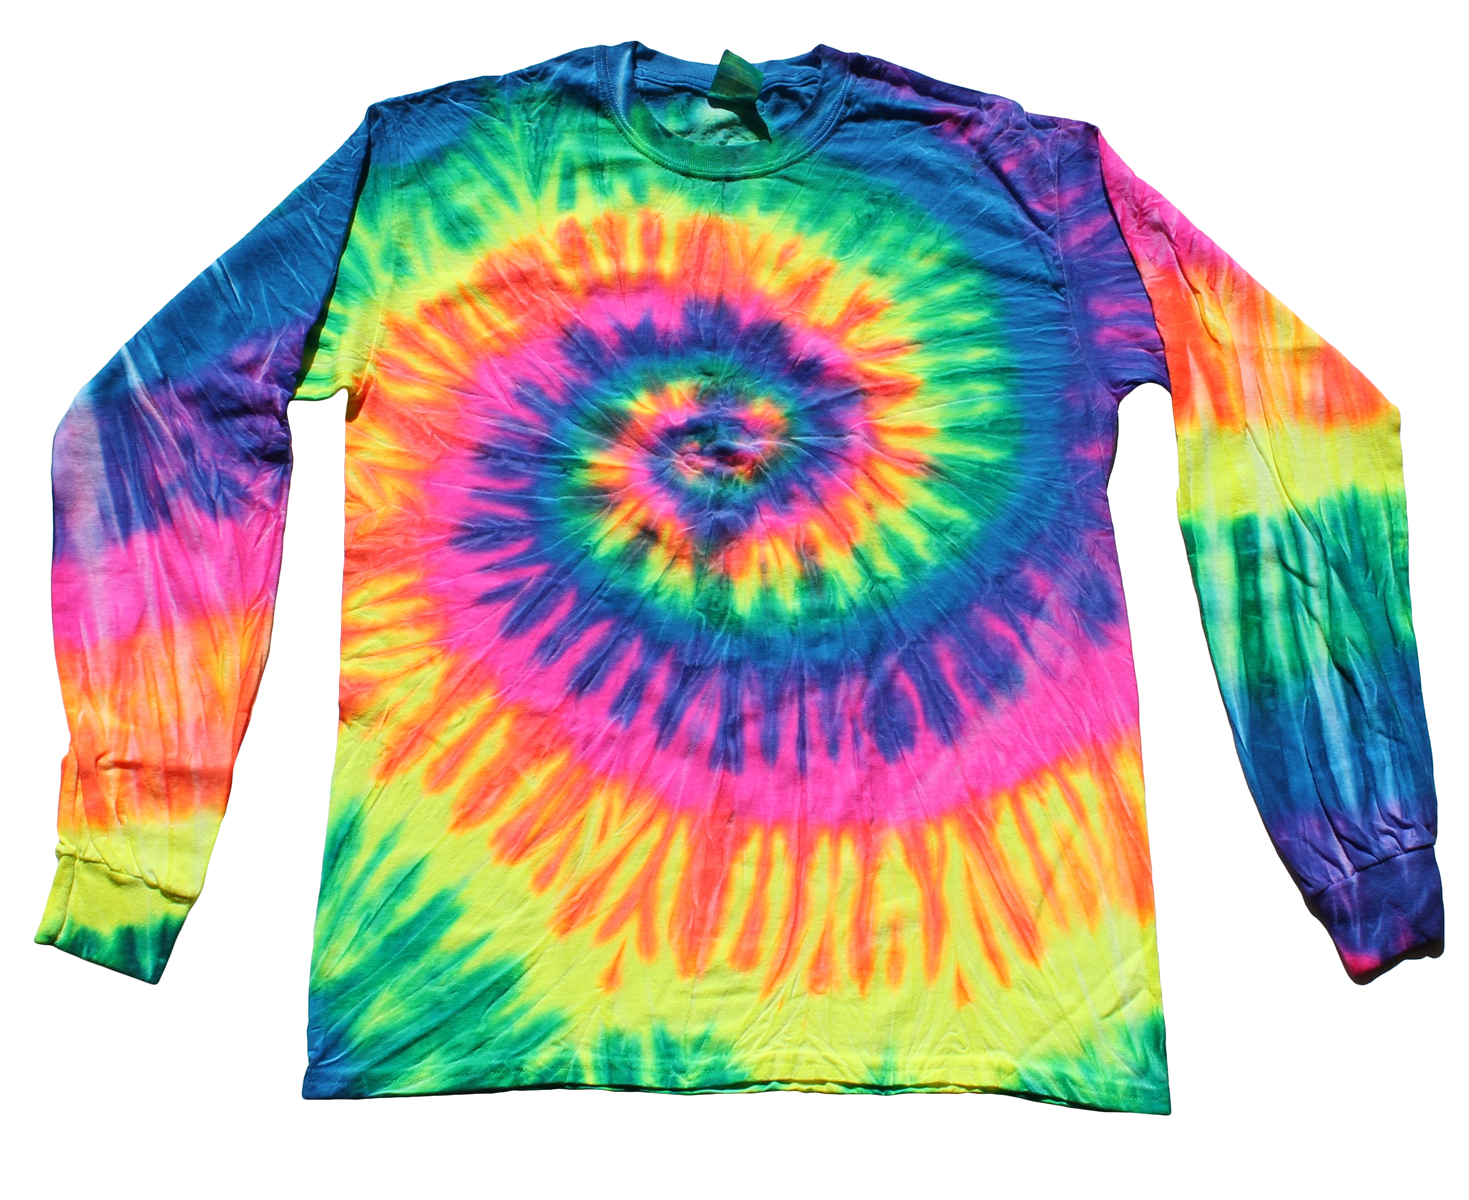 Neon Rainbow Tie Dye Long Sleeve T-Shirt – Tie Dye Space